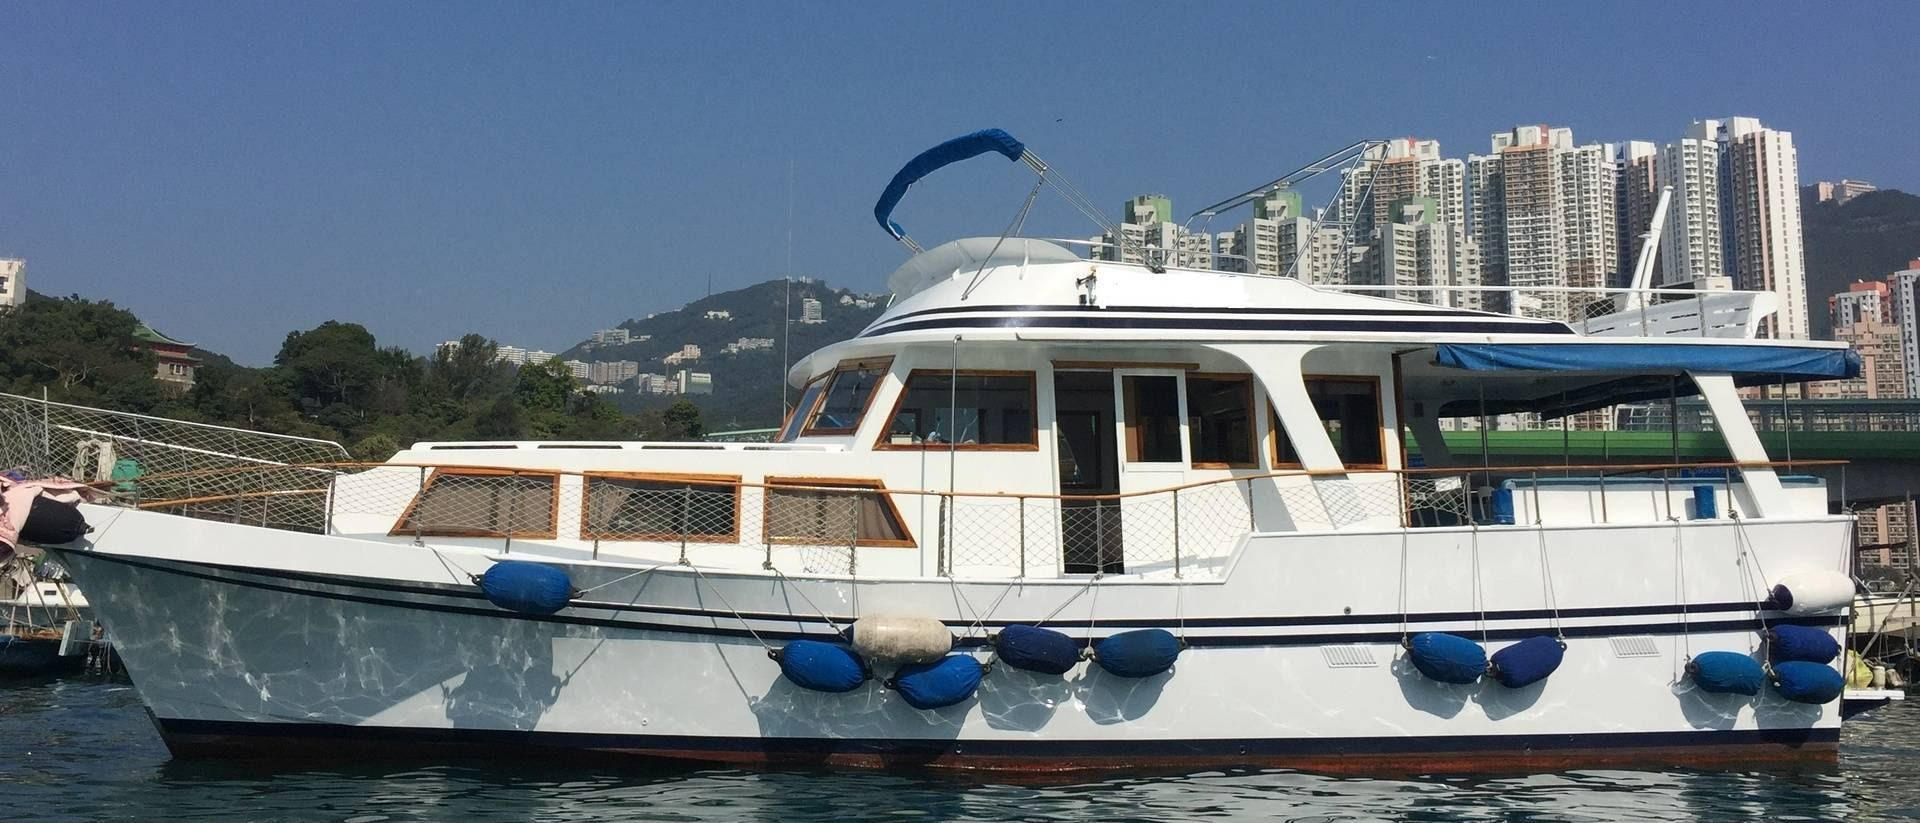 Boat rental in hong kong book this experiences for a real